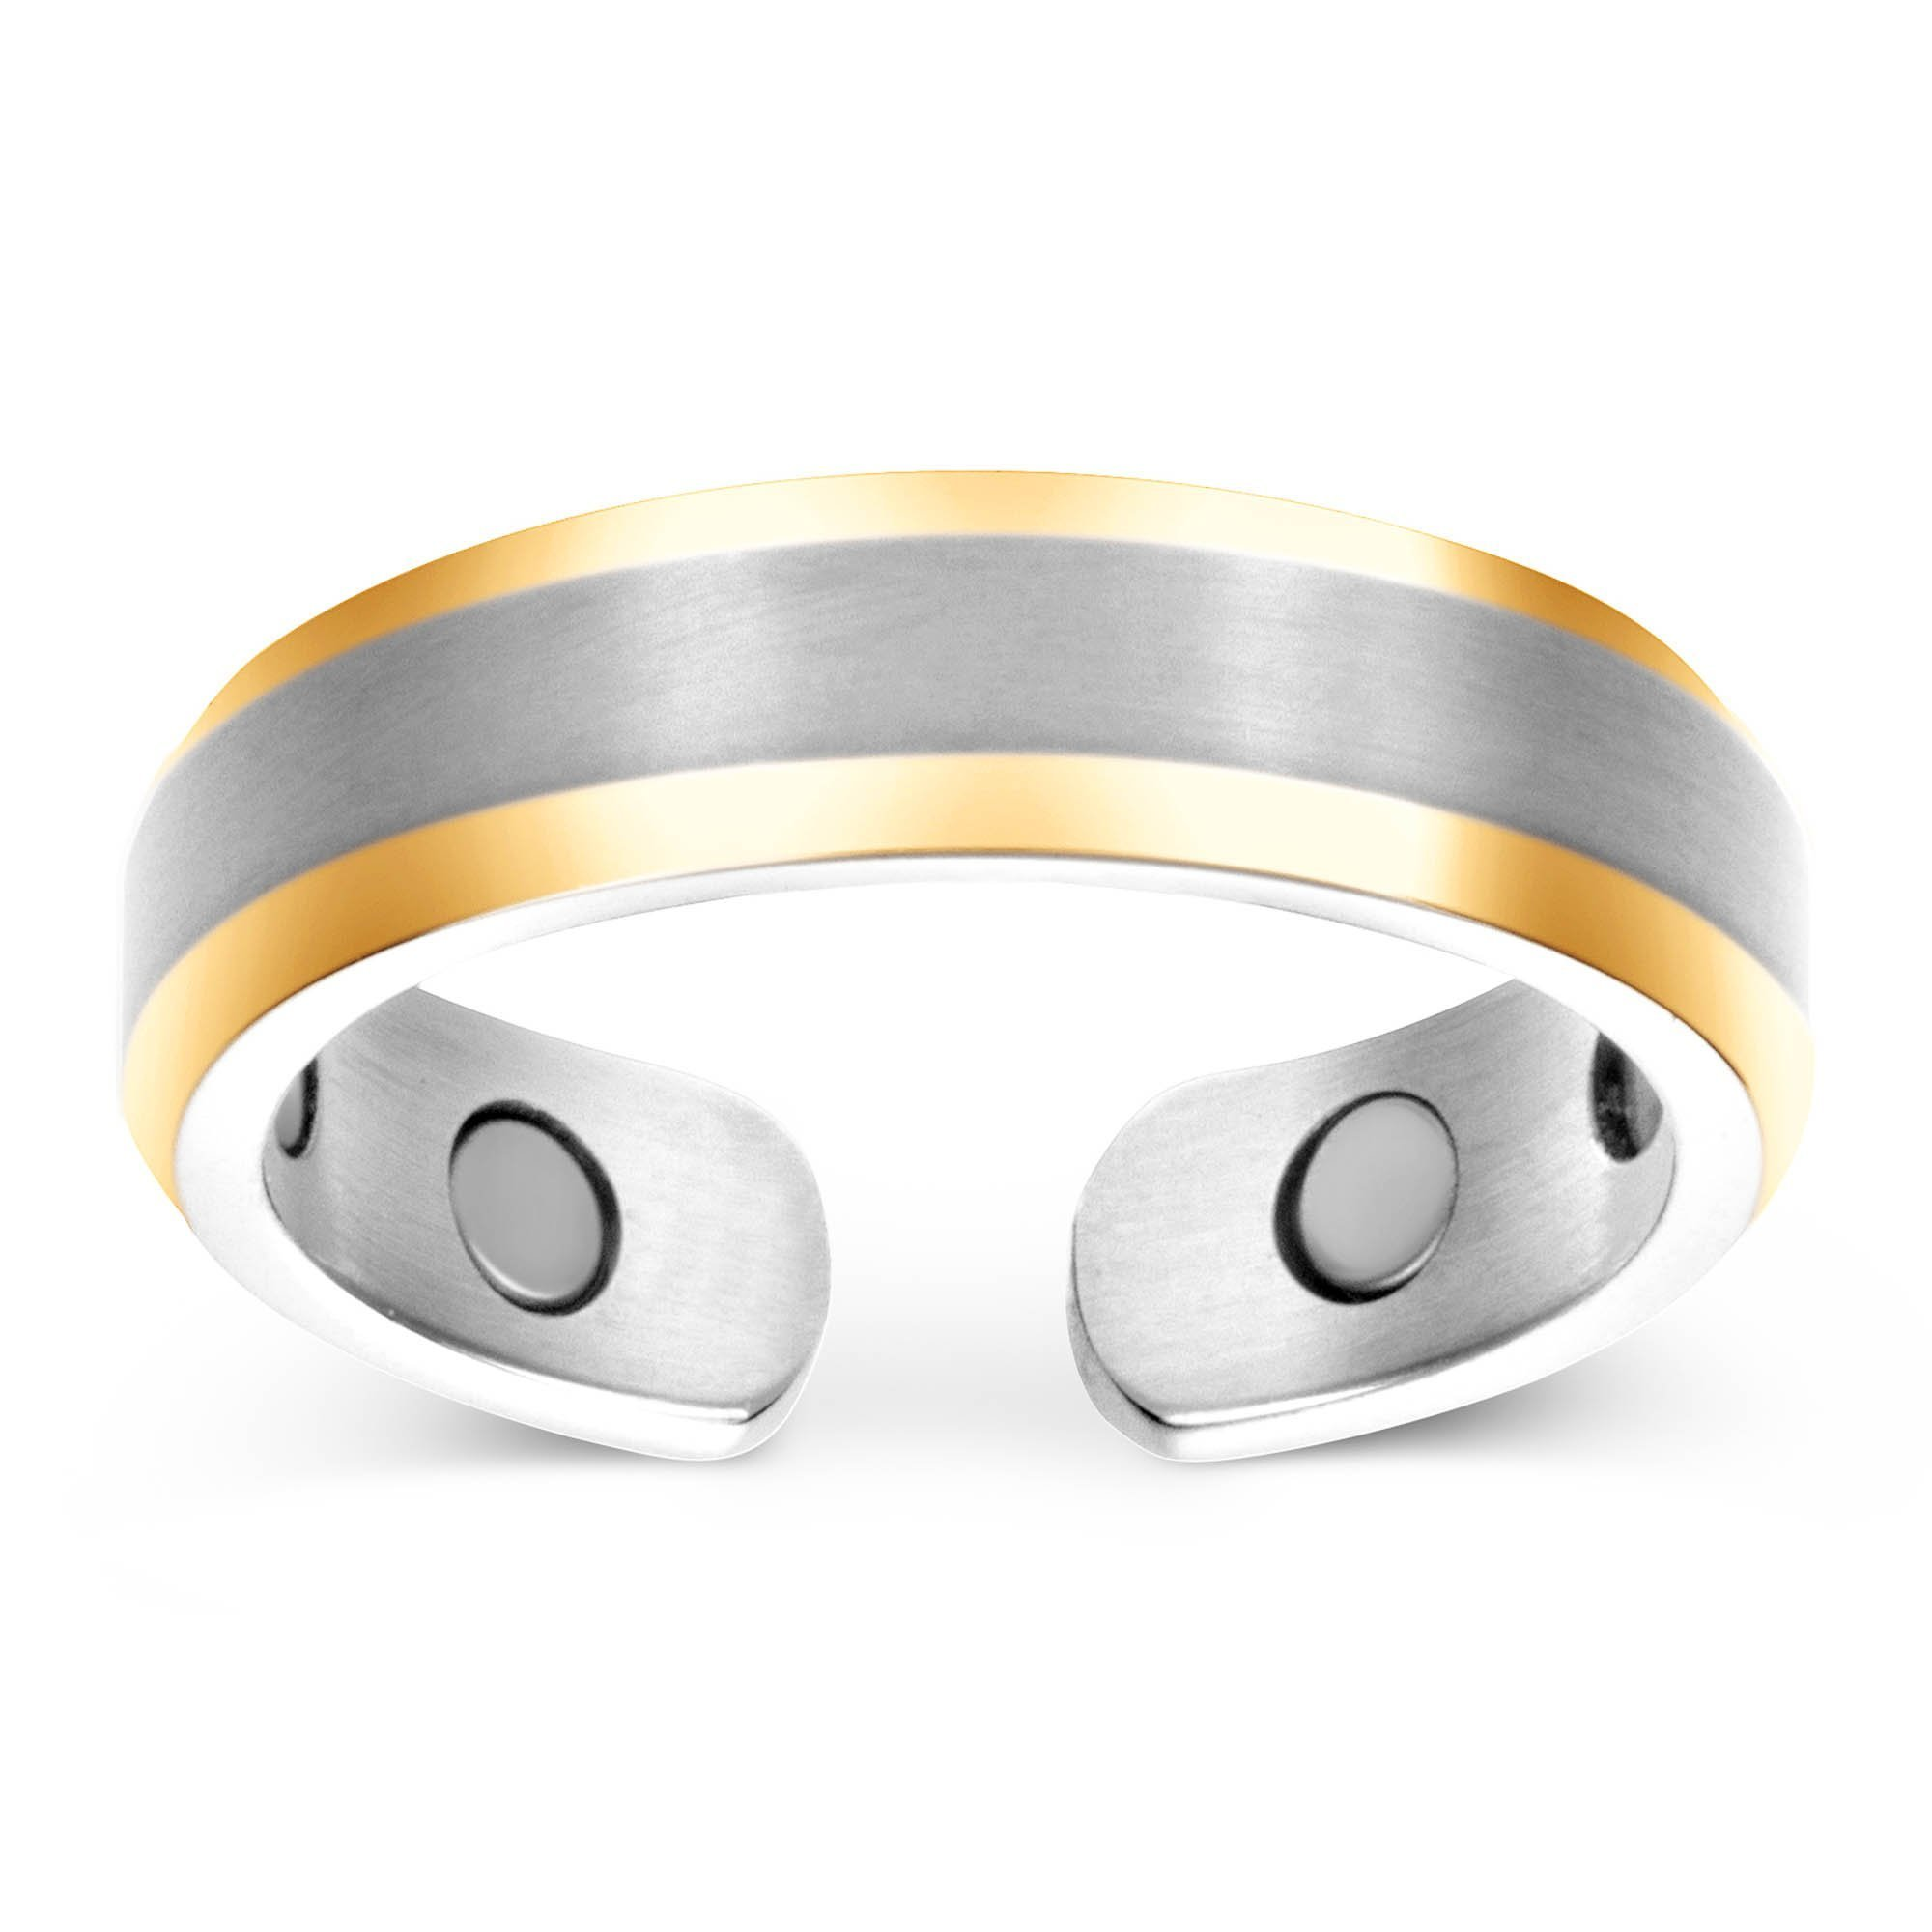 Elegant Titanium Magnetic Therapy Ring Pain Relief for Arthritis and Carpal Tunnel